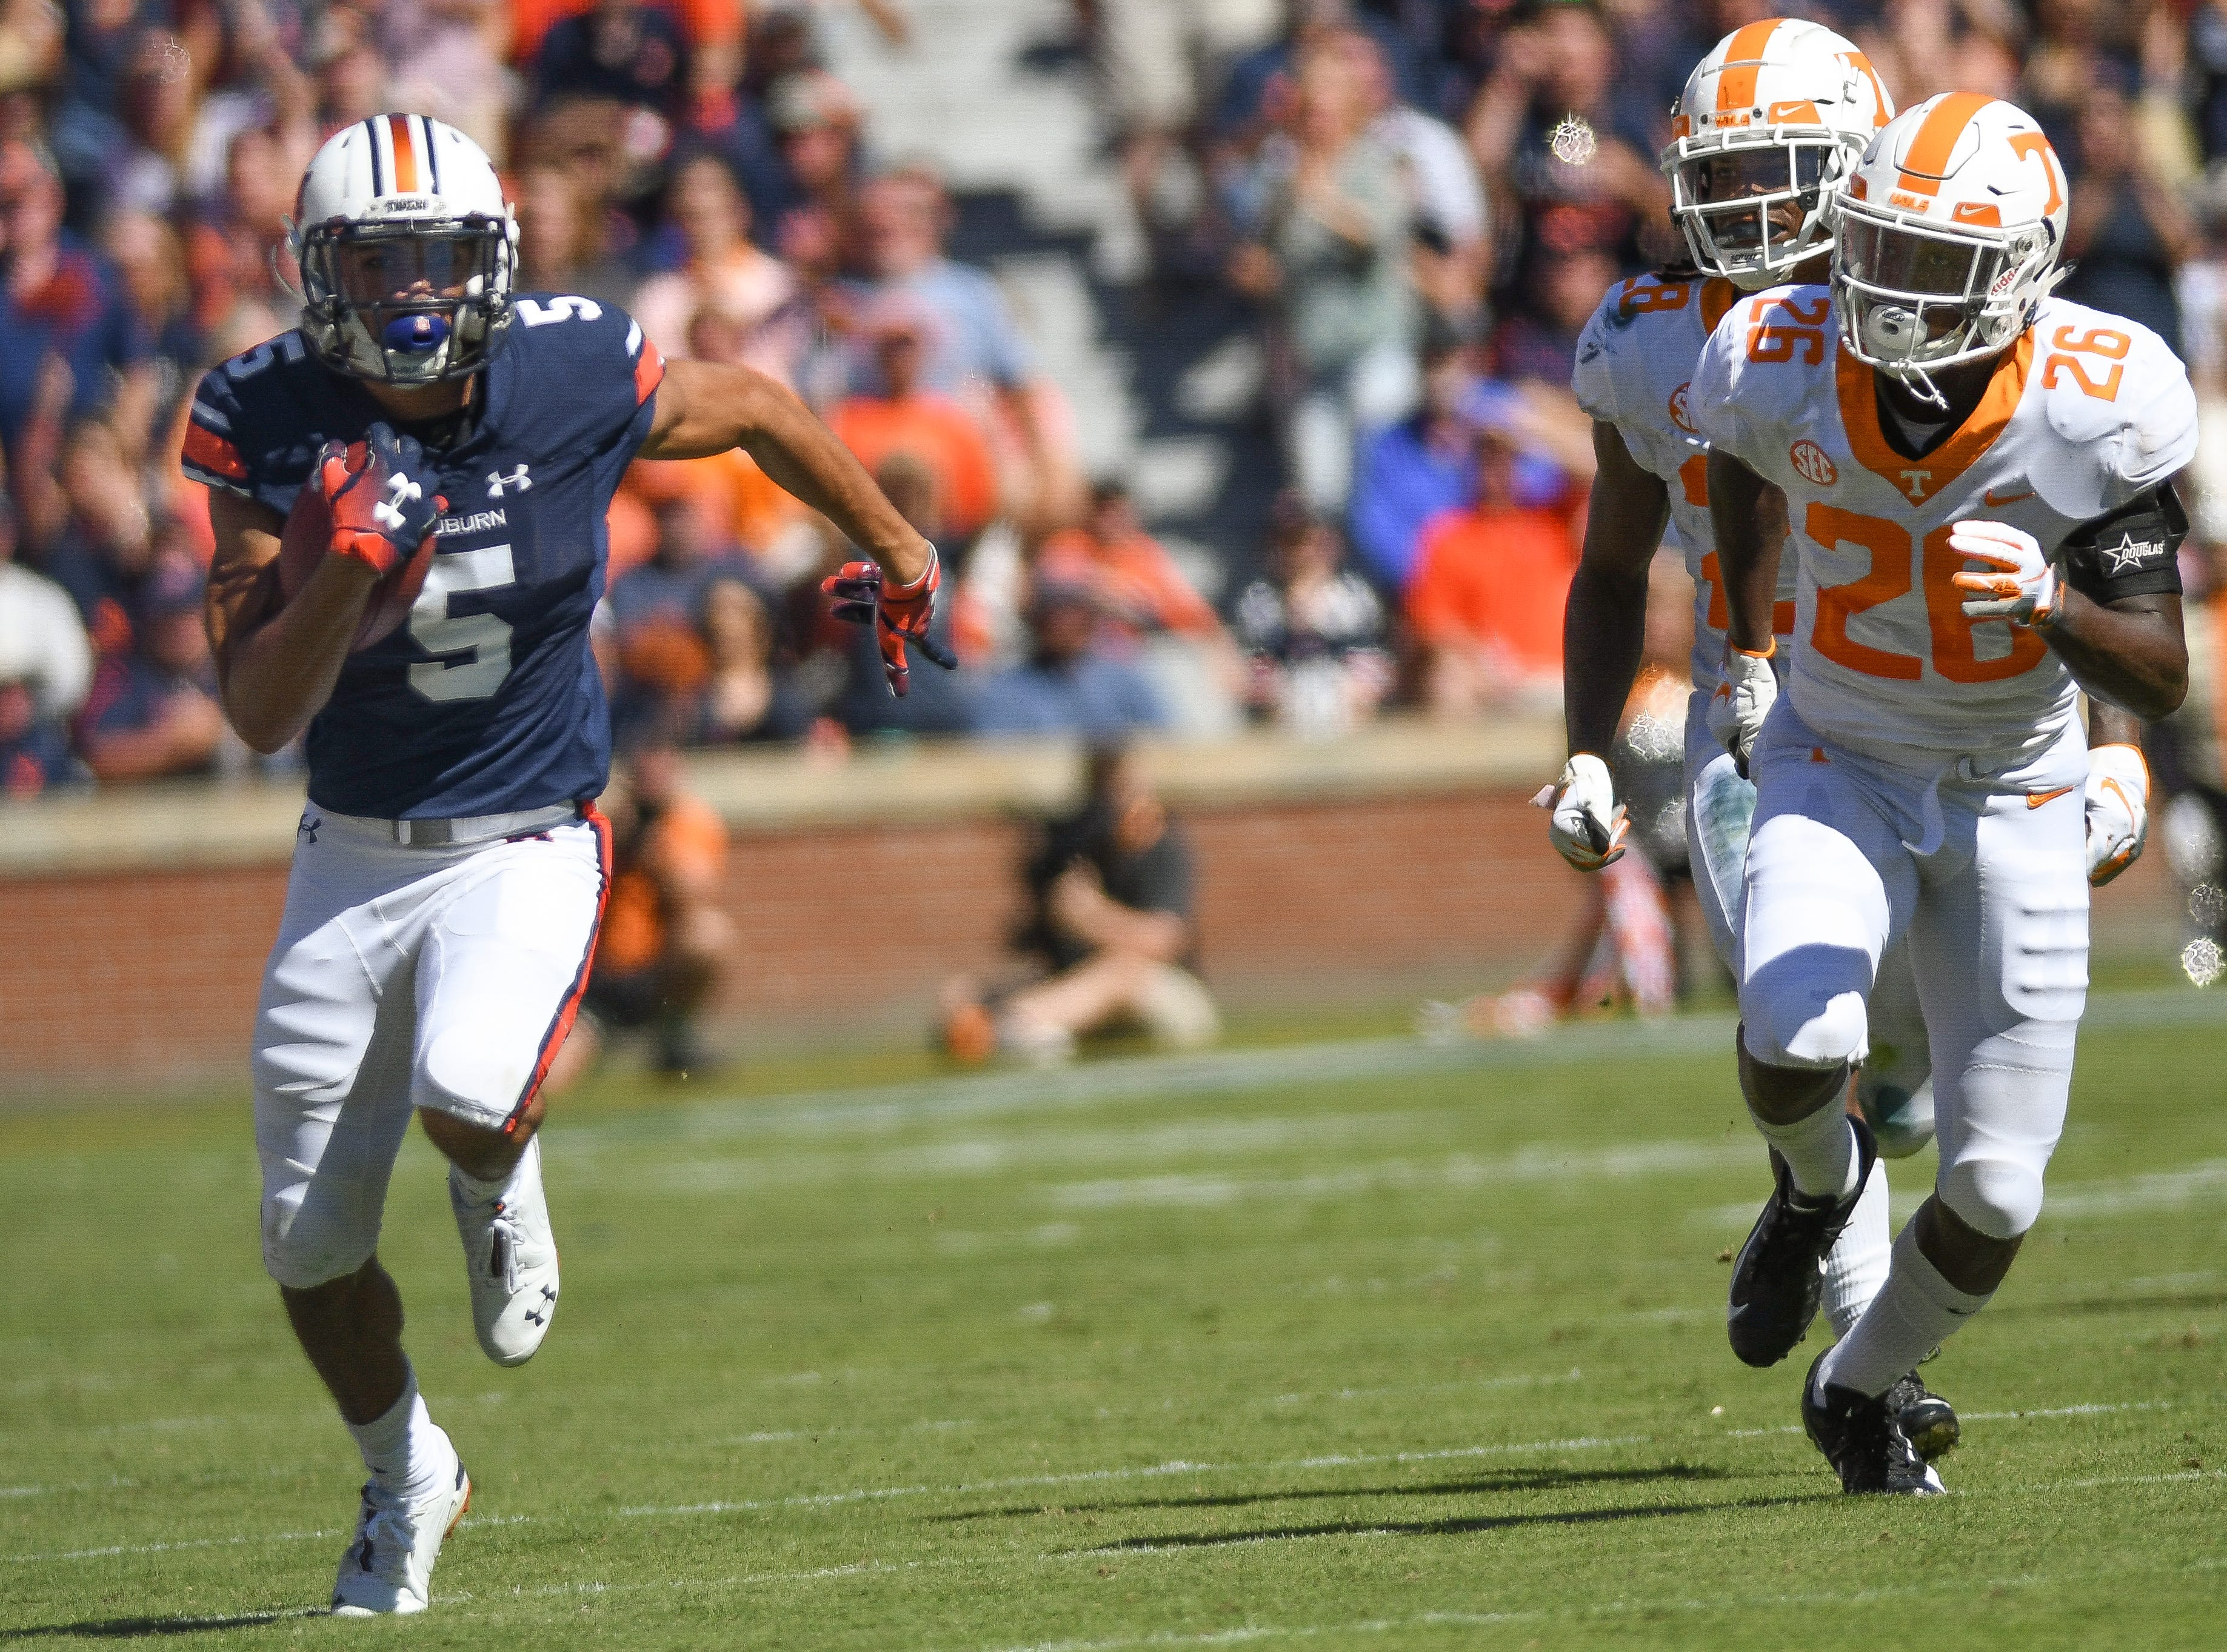 Ole Miss vs. Auburn football 2019: Time, TV schedule, and ...